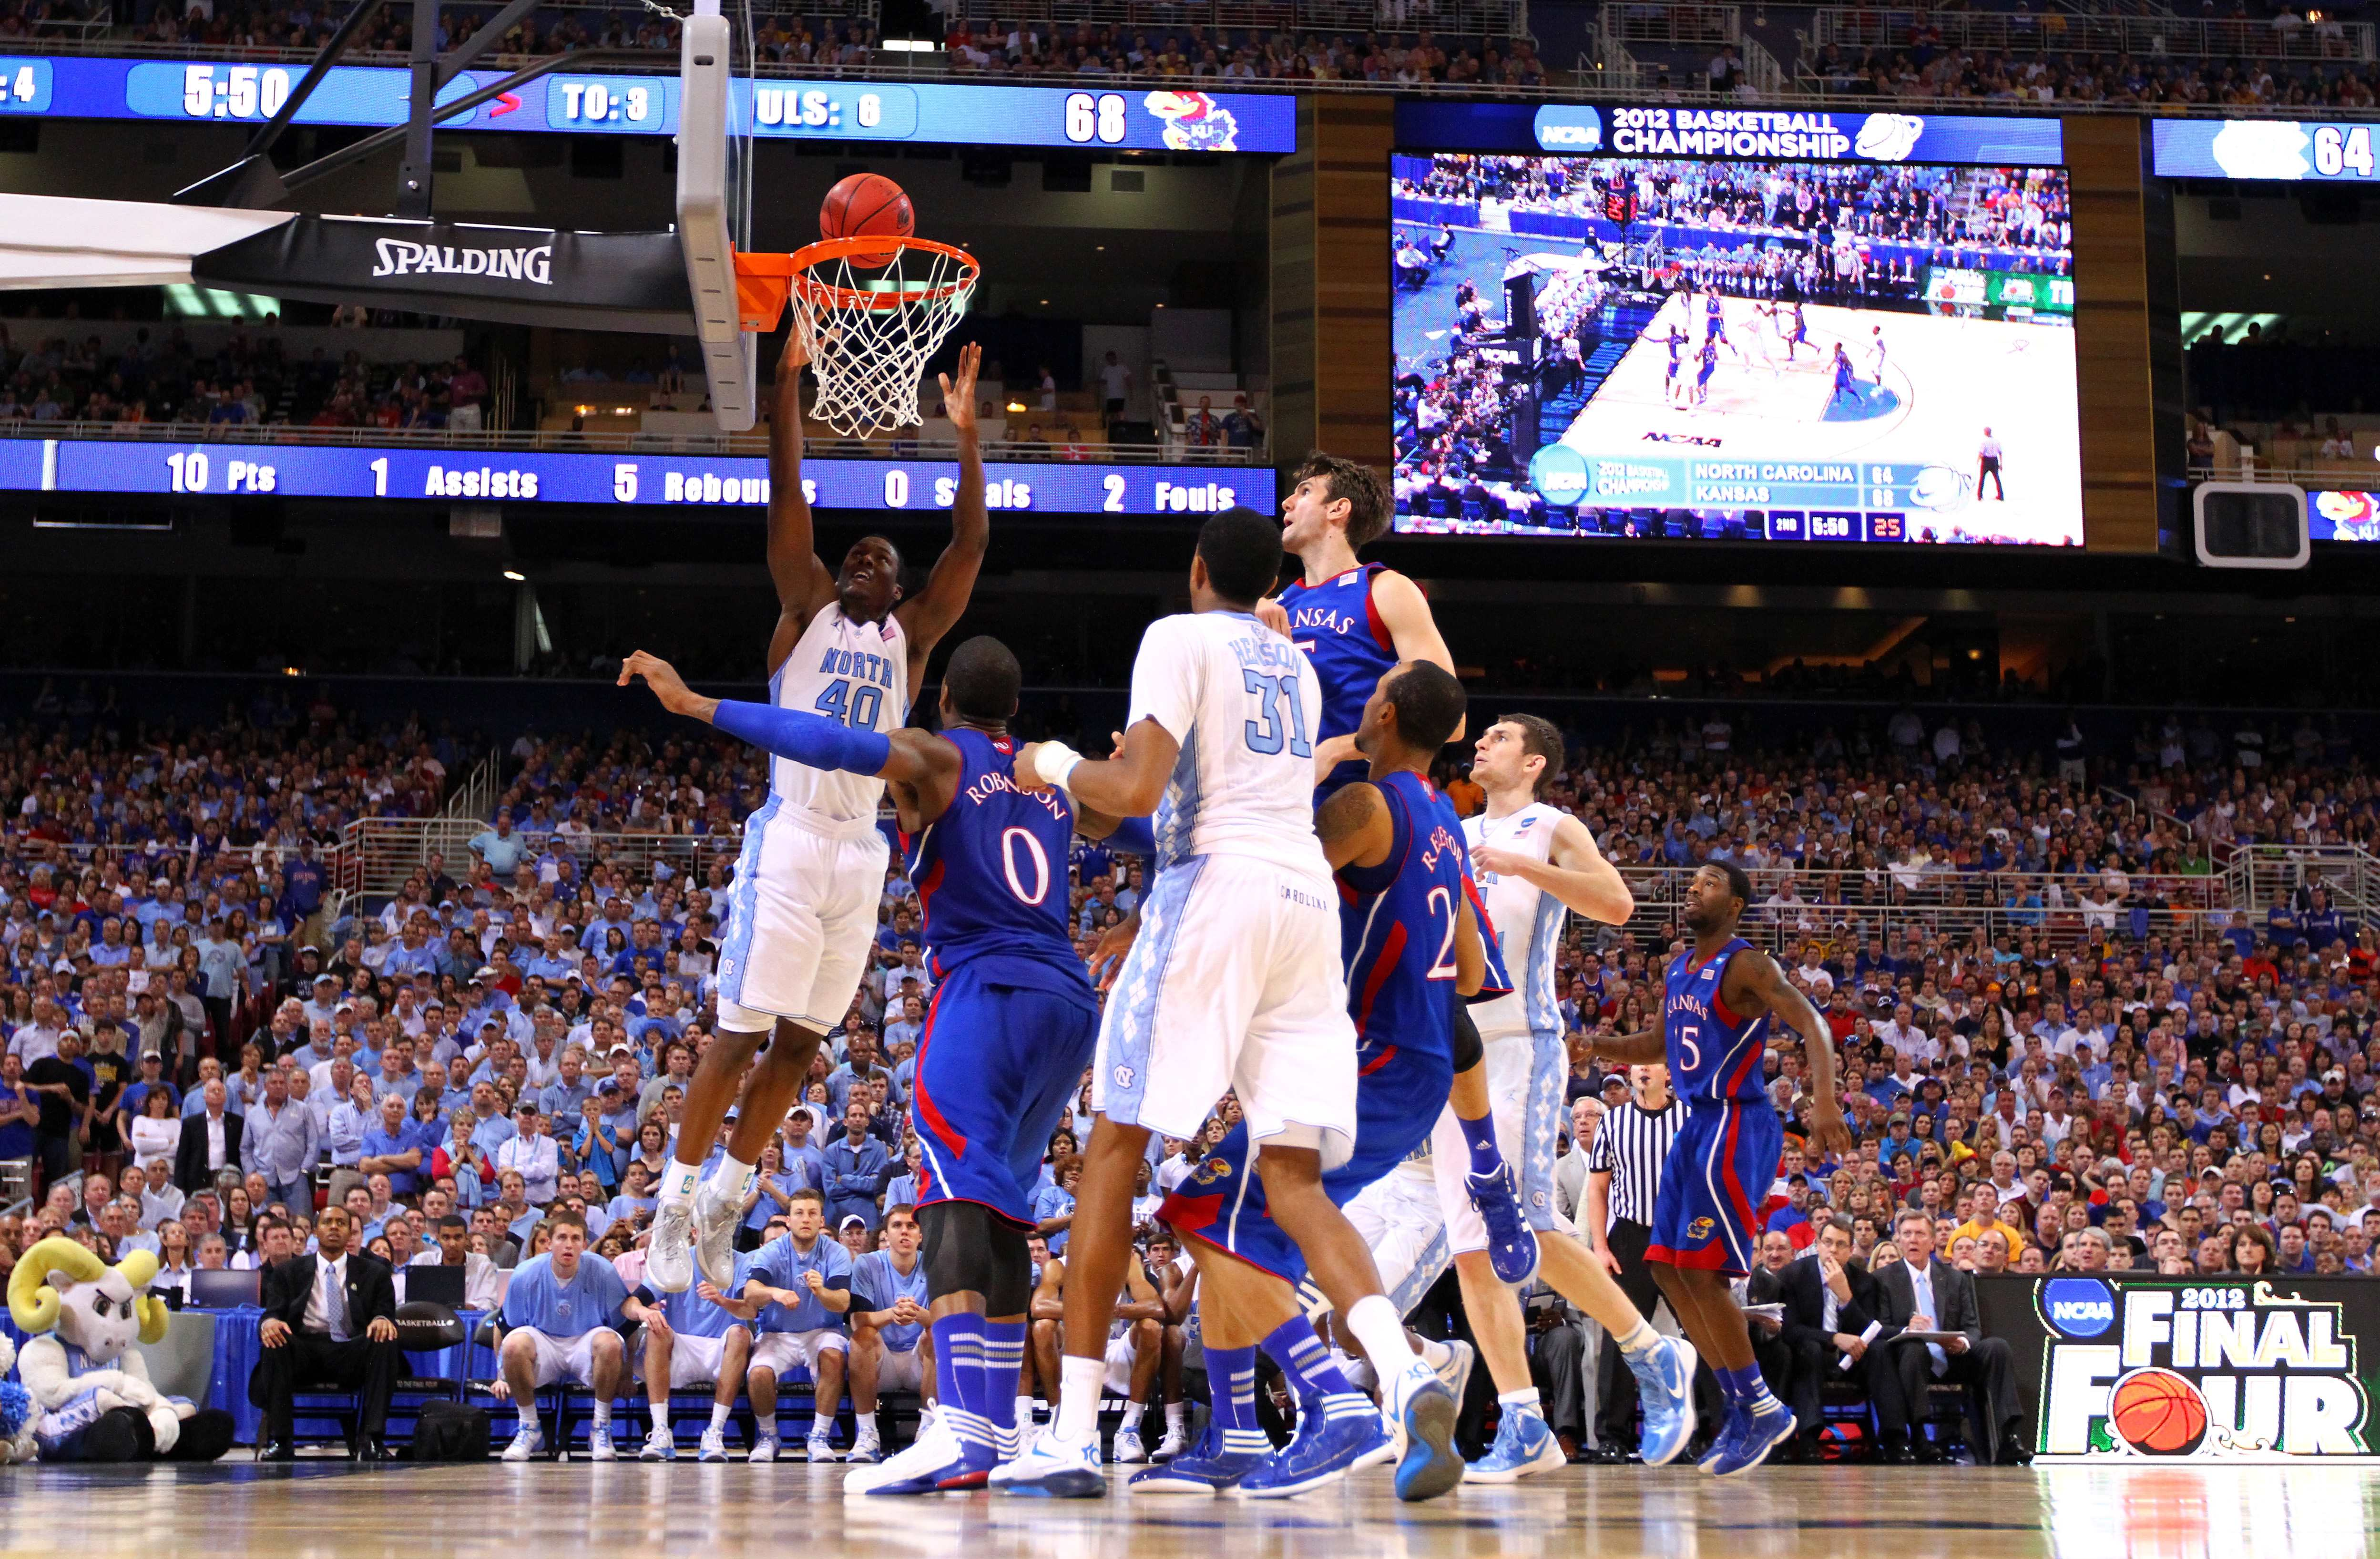 NCAA Basketball Tournament - Kansas v North Carolina